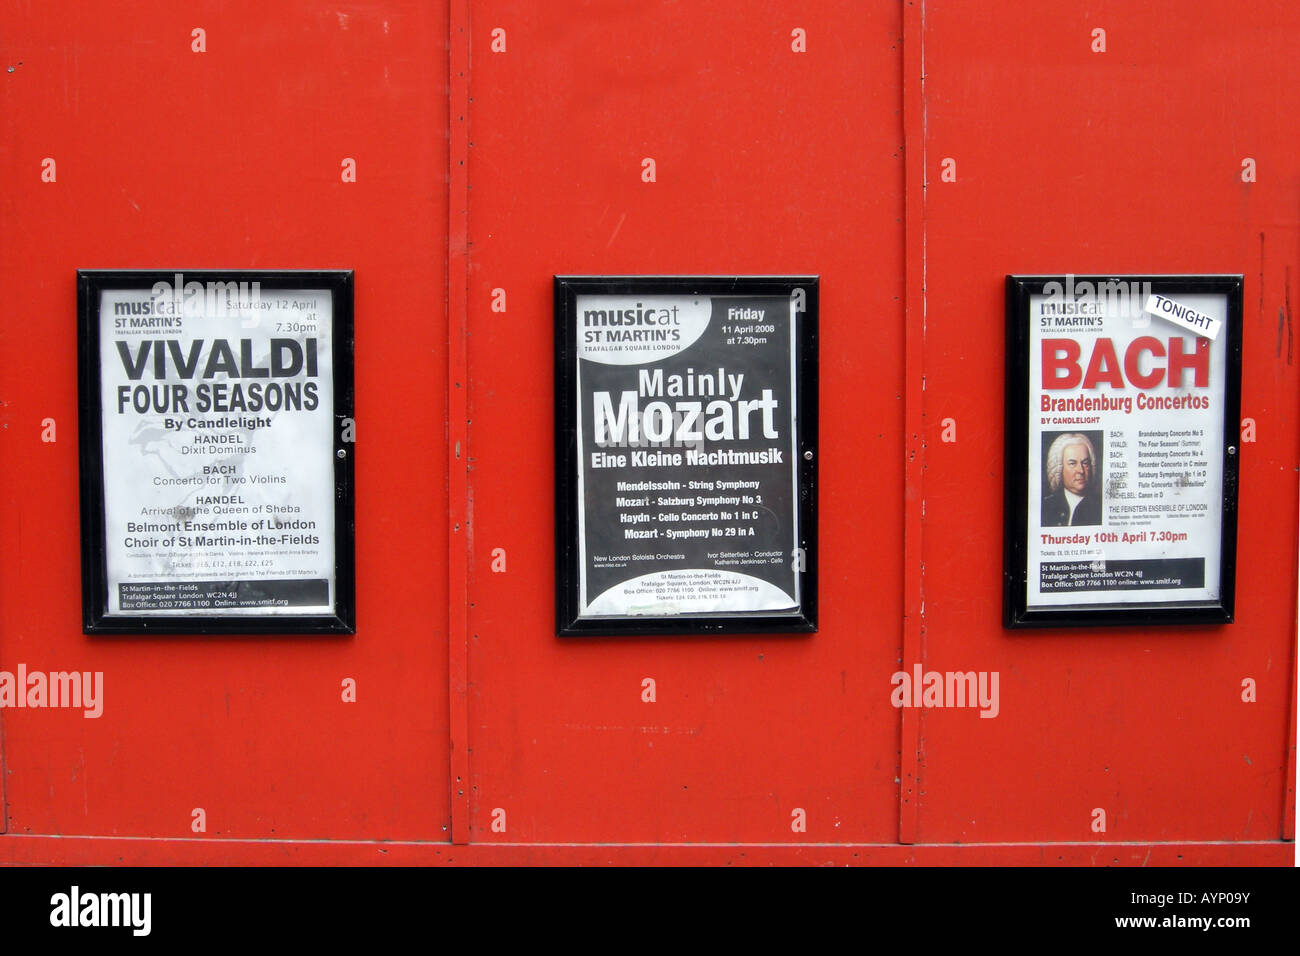 Posters advertising musical works by Vivaldi Mozart and Bach at various theatres in London - Stock Image